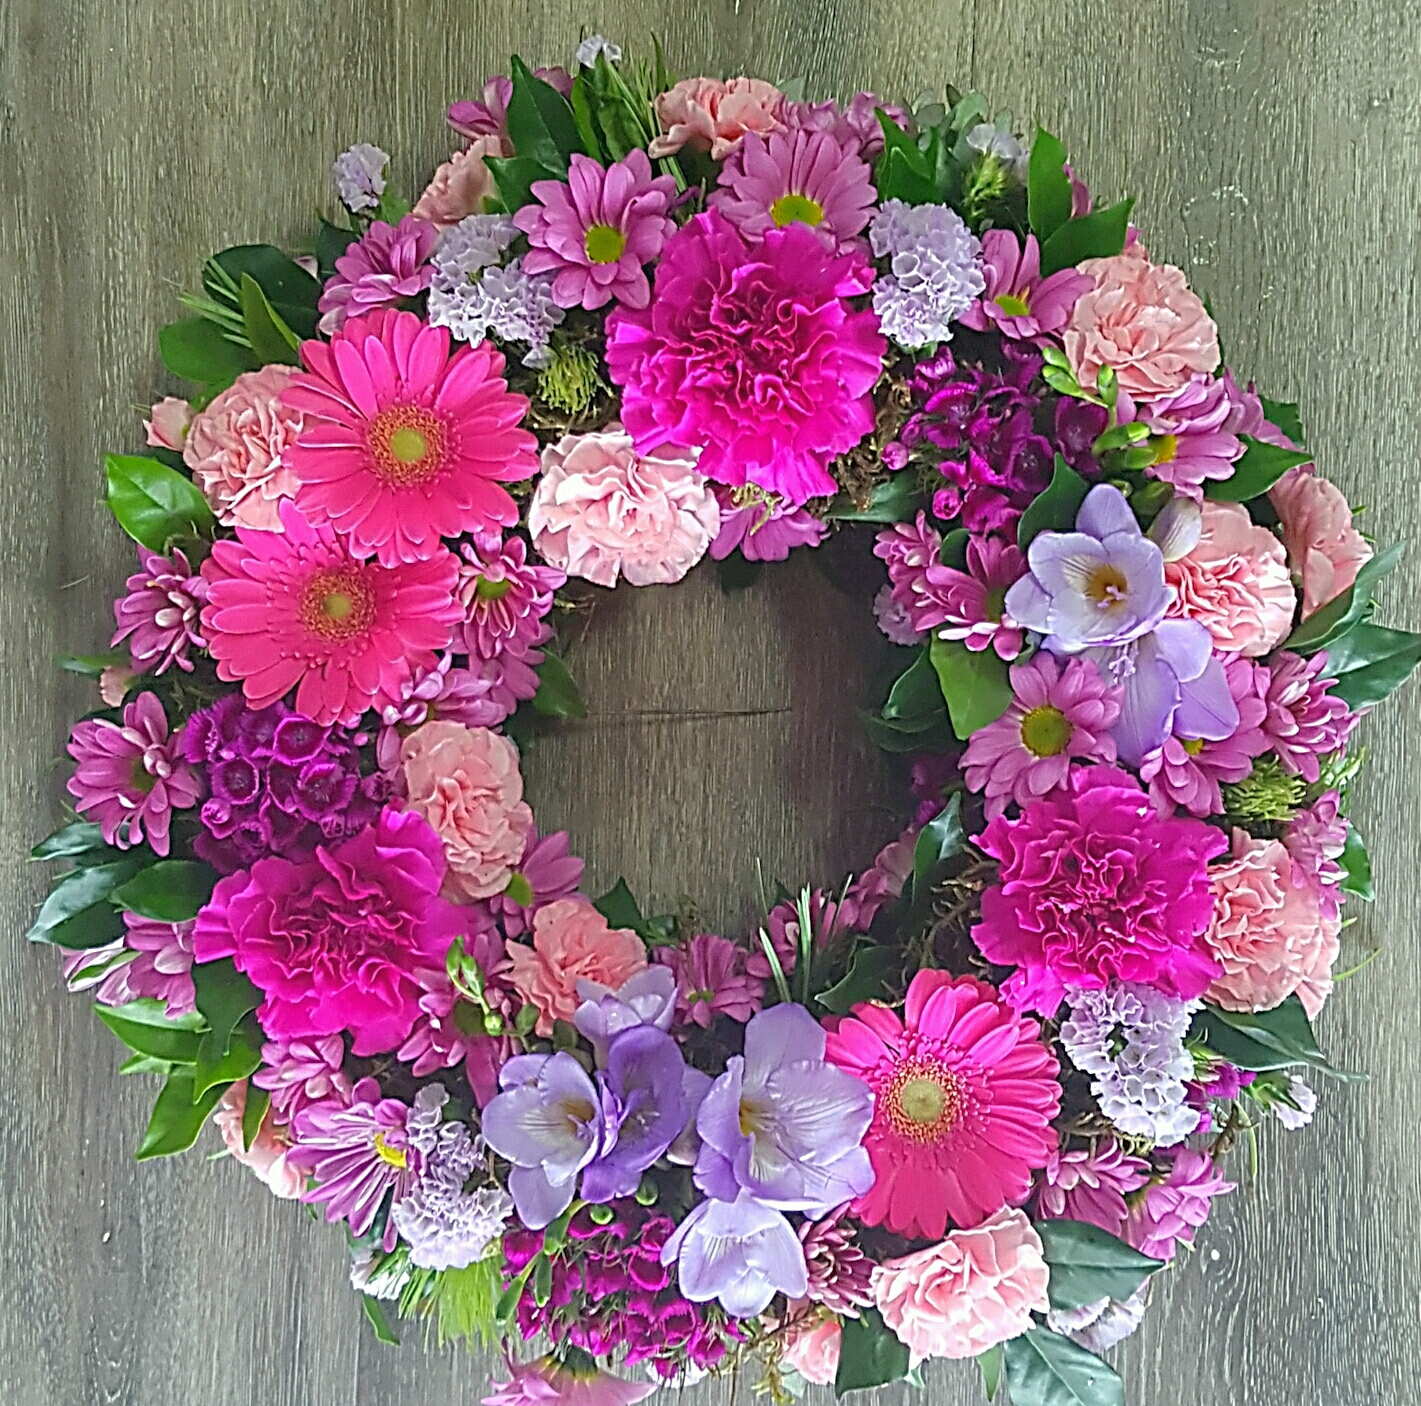 KINDNESS A BEAUTIFUL WREATH OF PINKS AND PURPLES.  SUITABLE FOR A GRAVESIDE SERVICE.